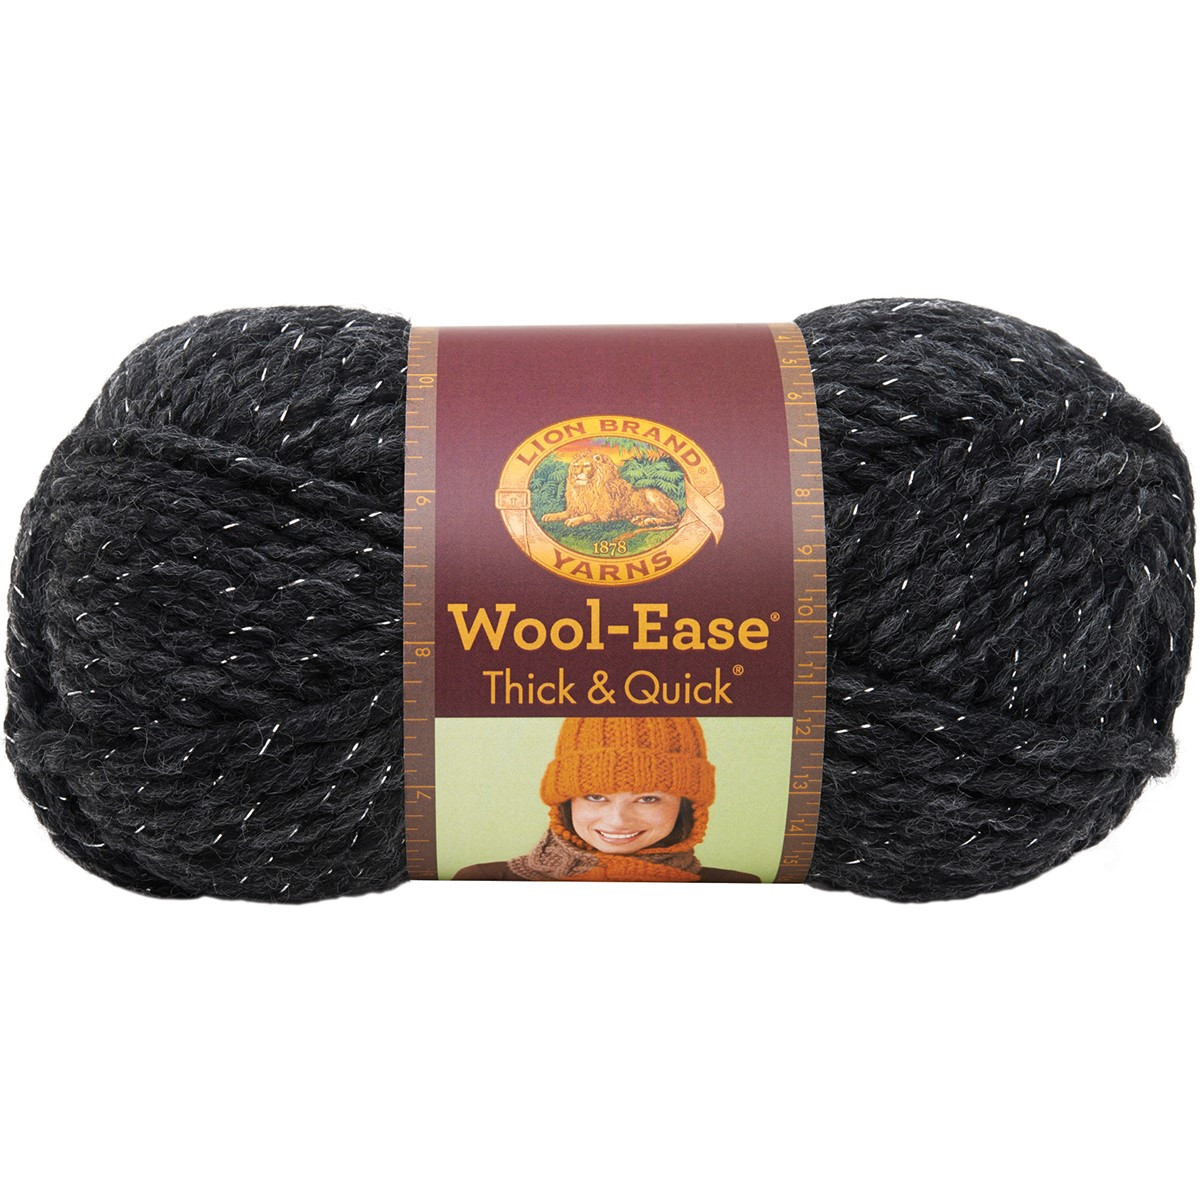 Wool Ease Thick & Quick Yarn Constellation Metallic